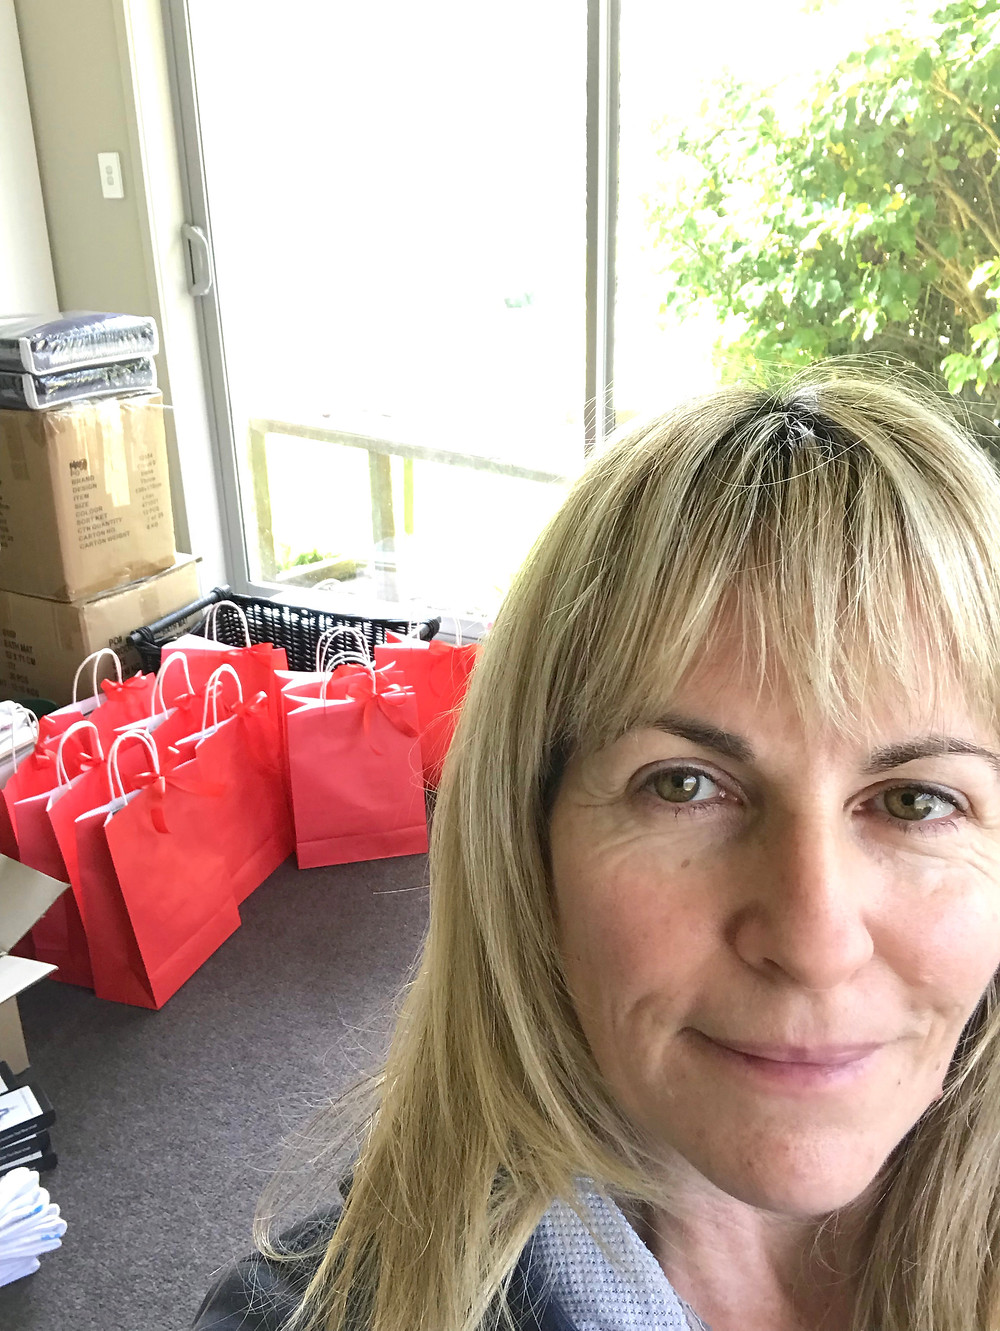 Red gift bags for pamper day